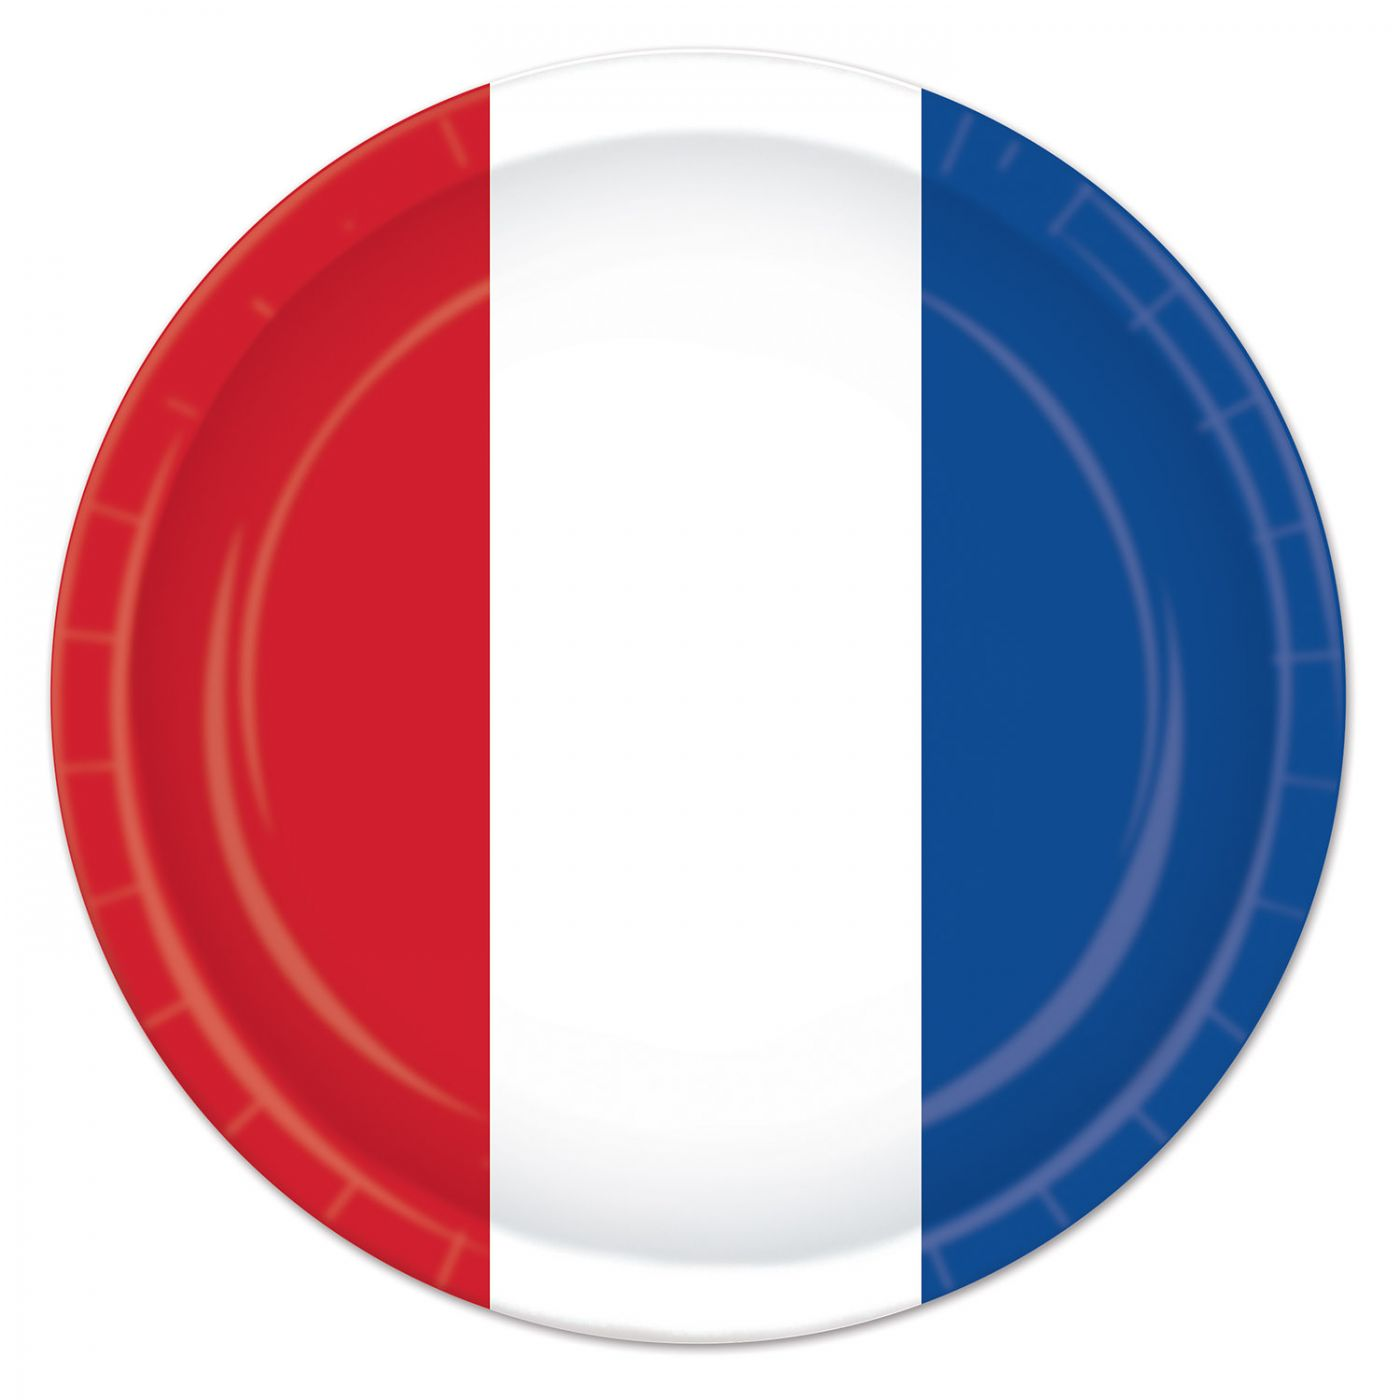 Red, White & Blue Plates image